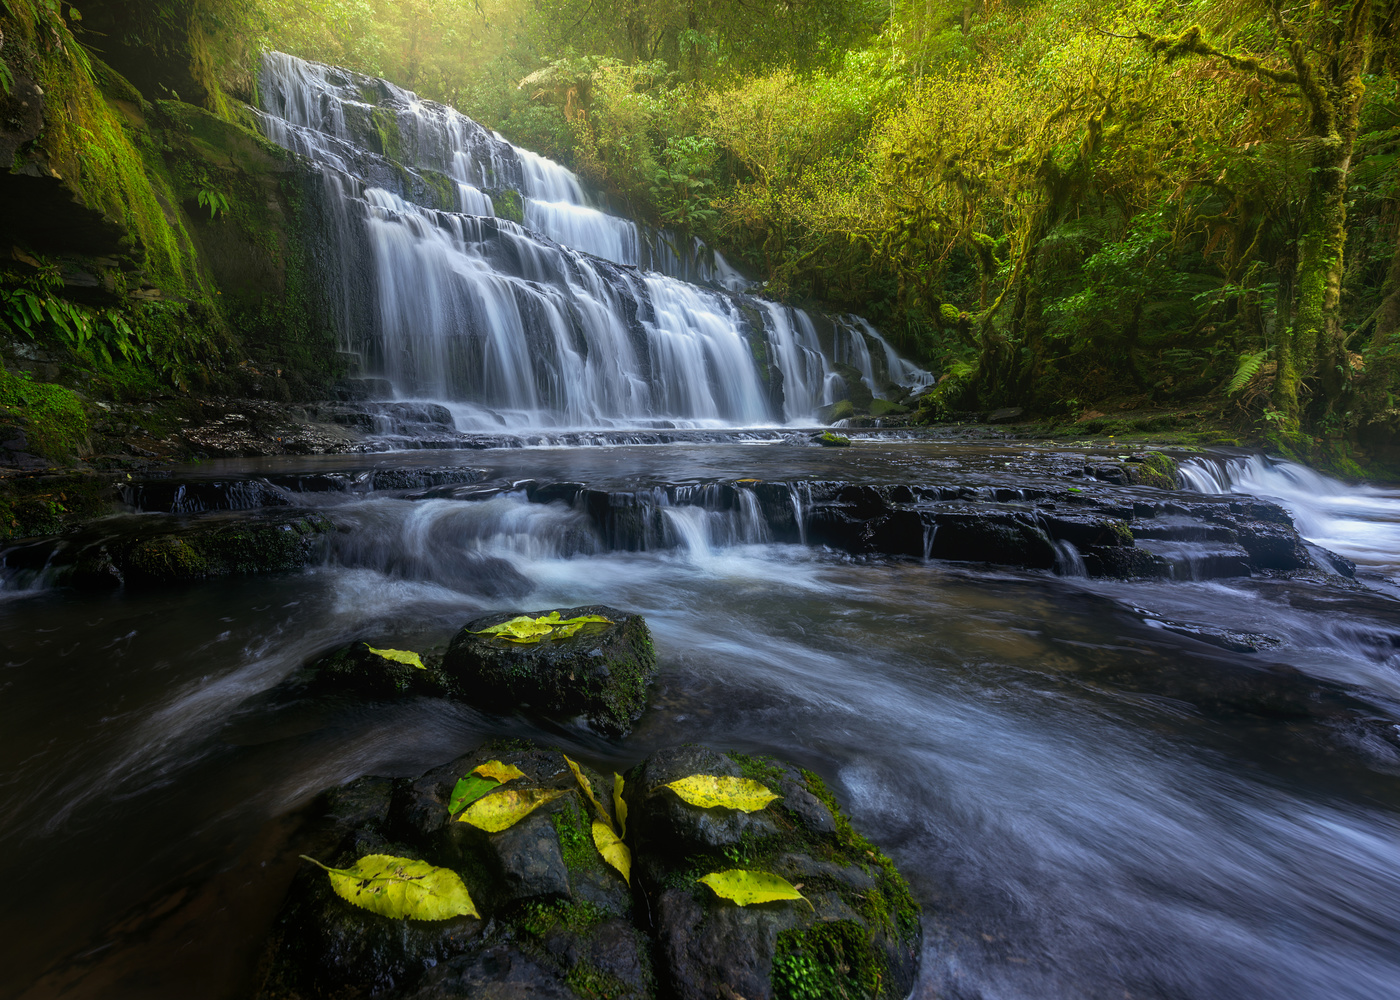 The Catlins by Hugo Valle